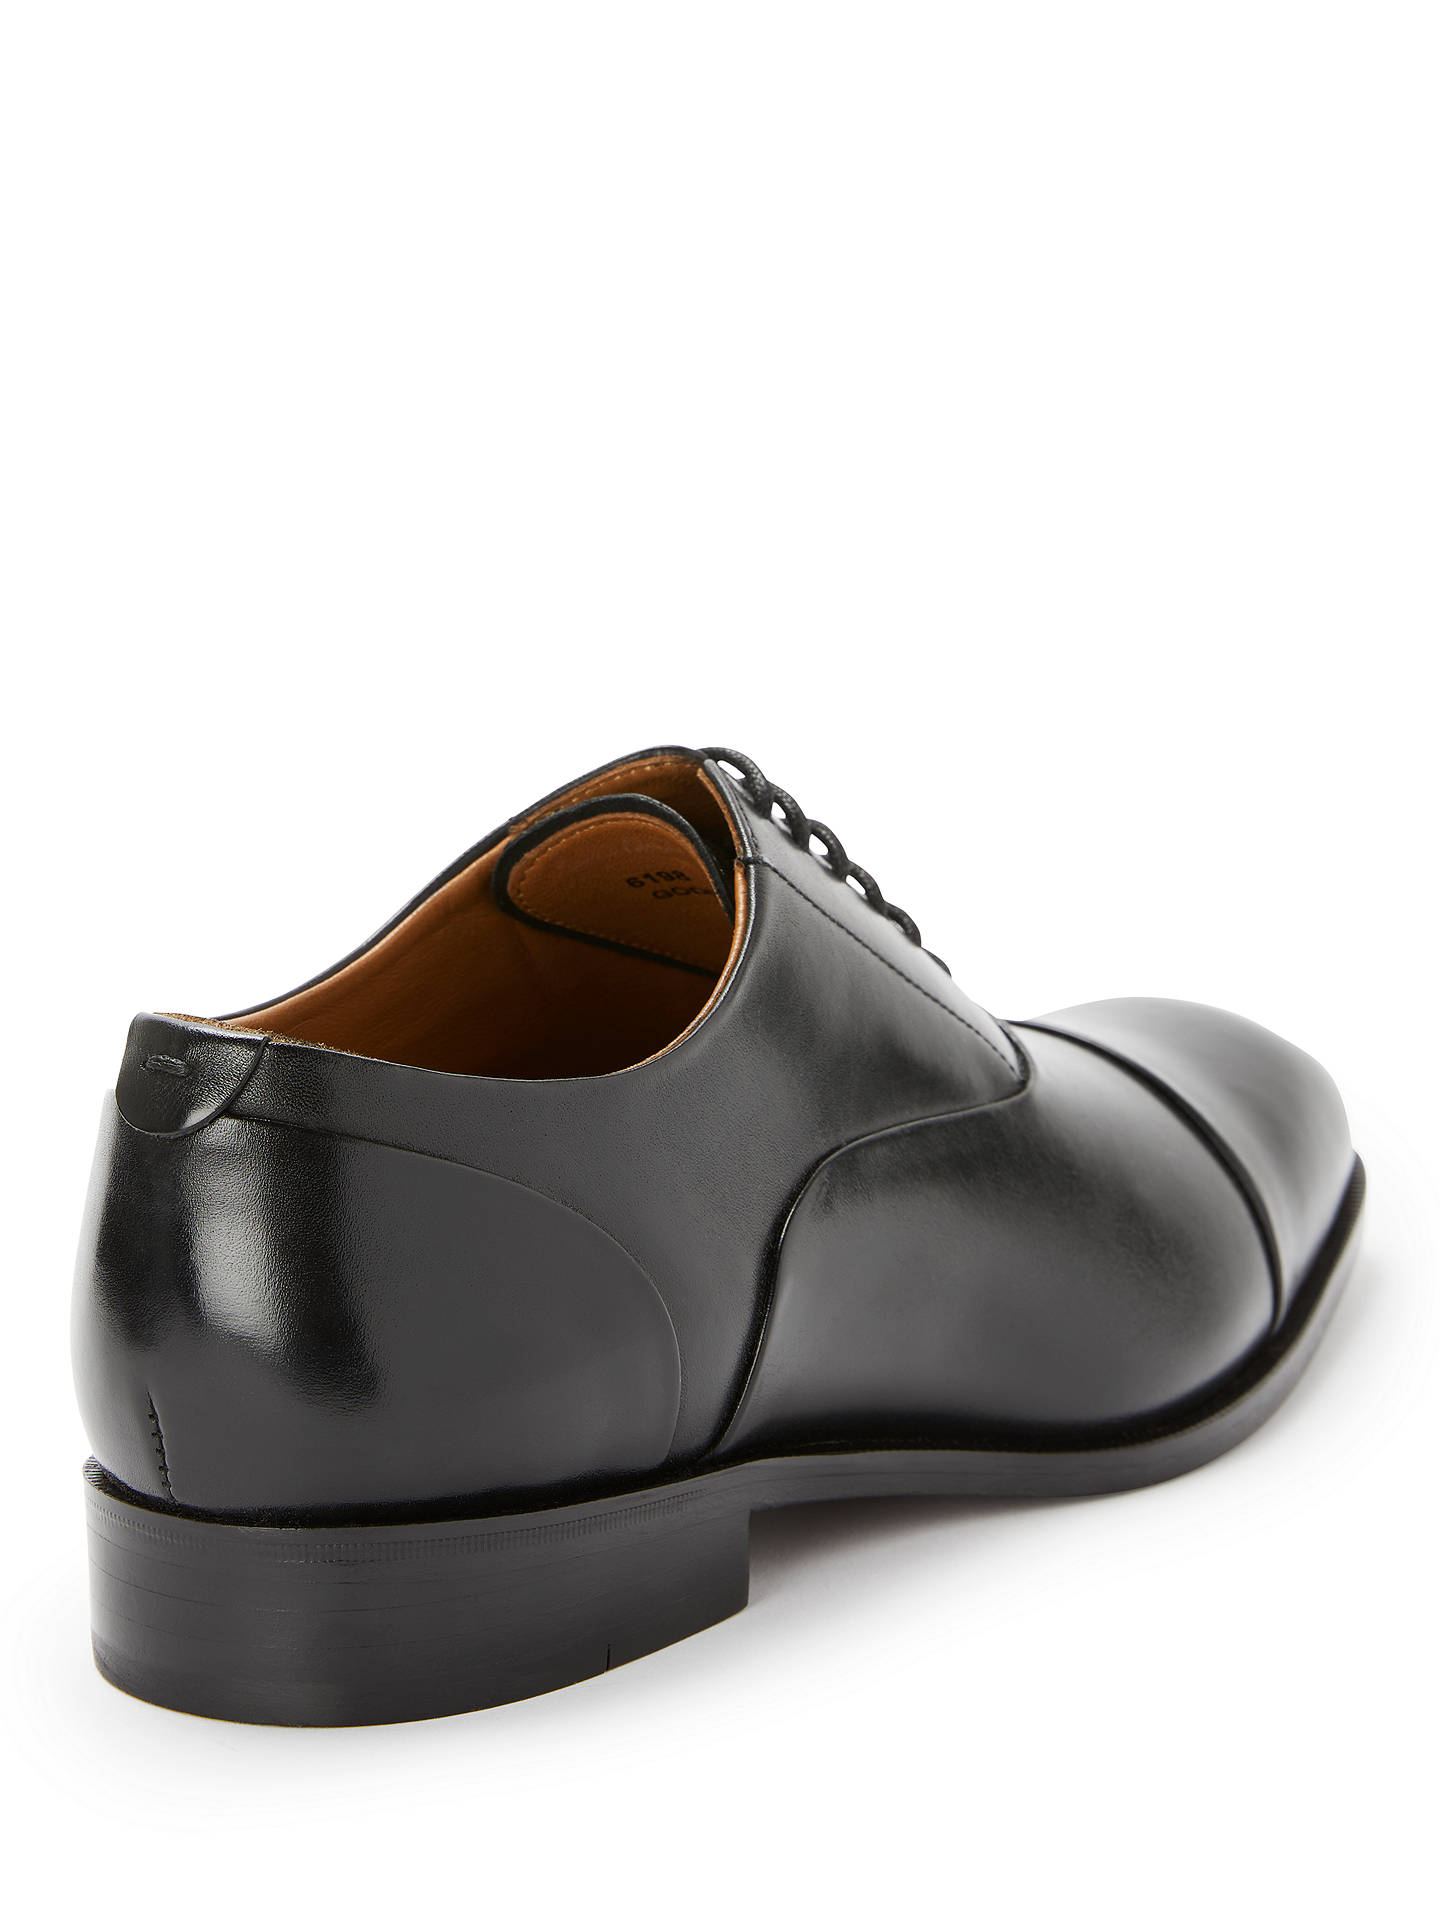 Buy John Lewis & Partners Charles Oxford Shoes, Black, 9 Online at johnlewis.com